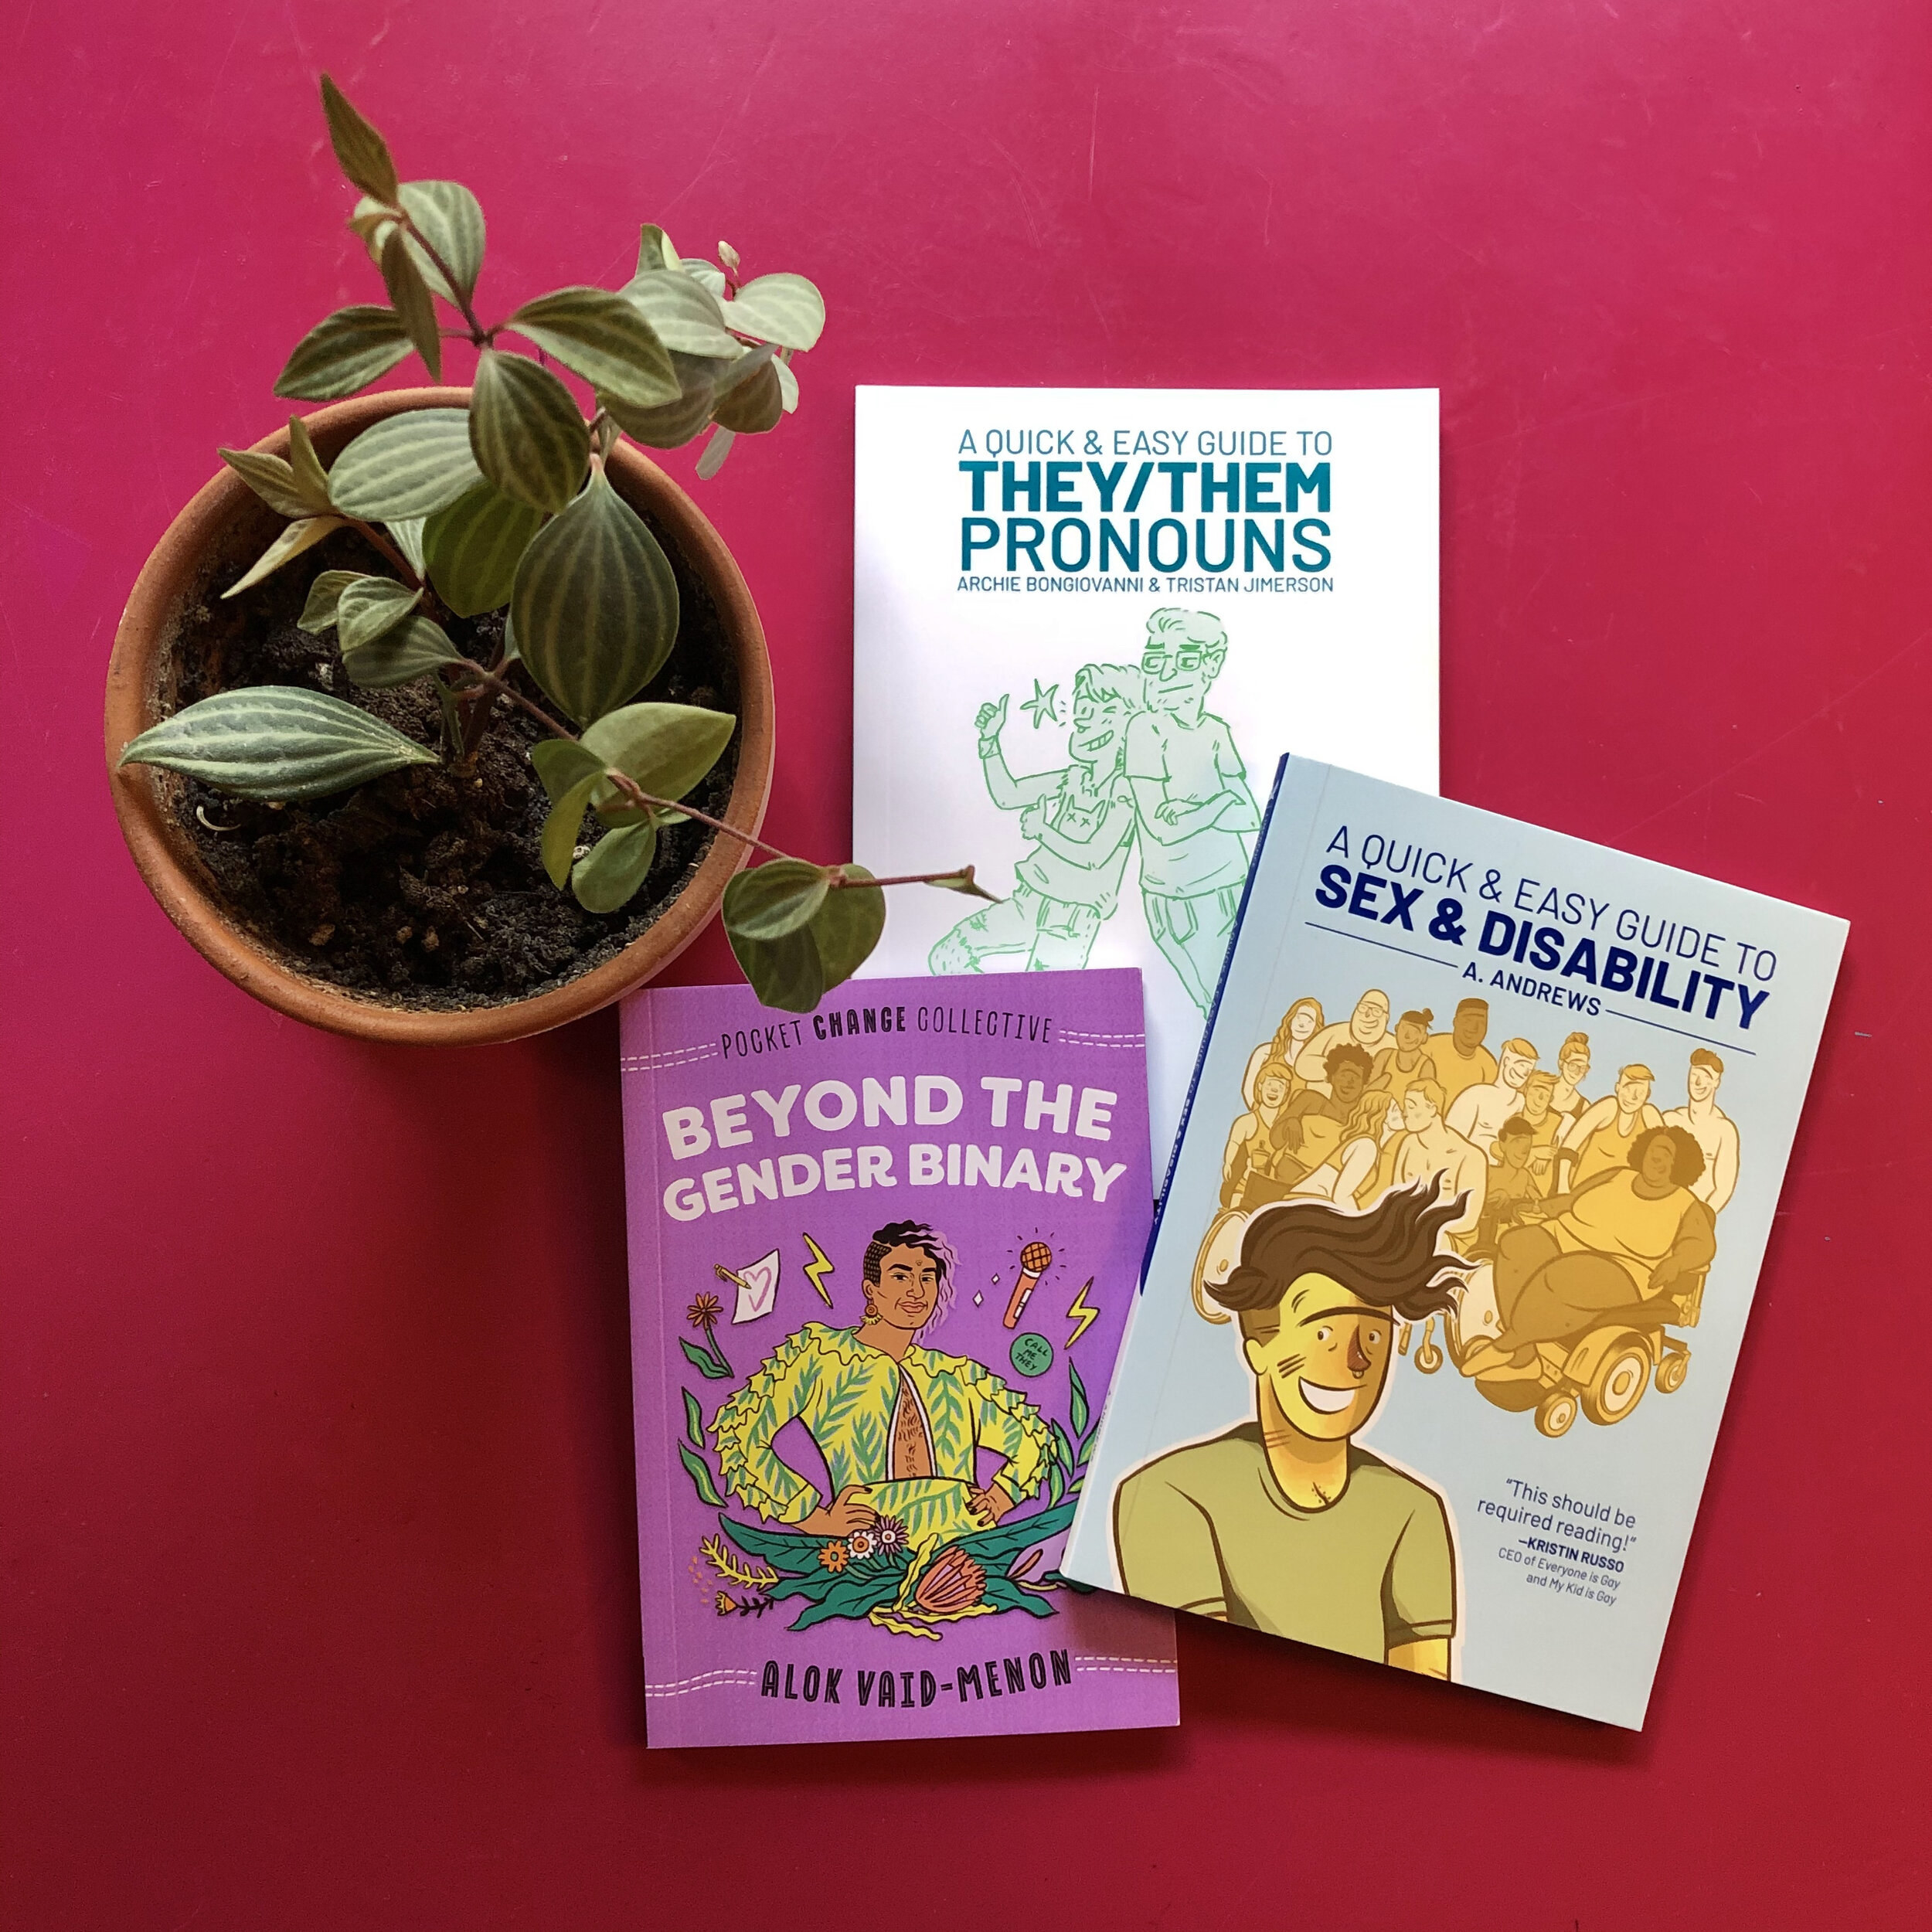 The books and a plant